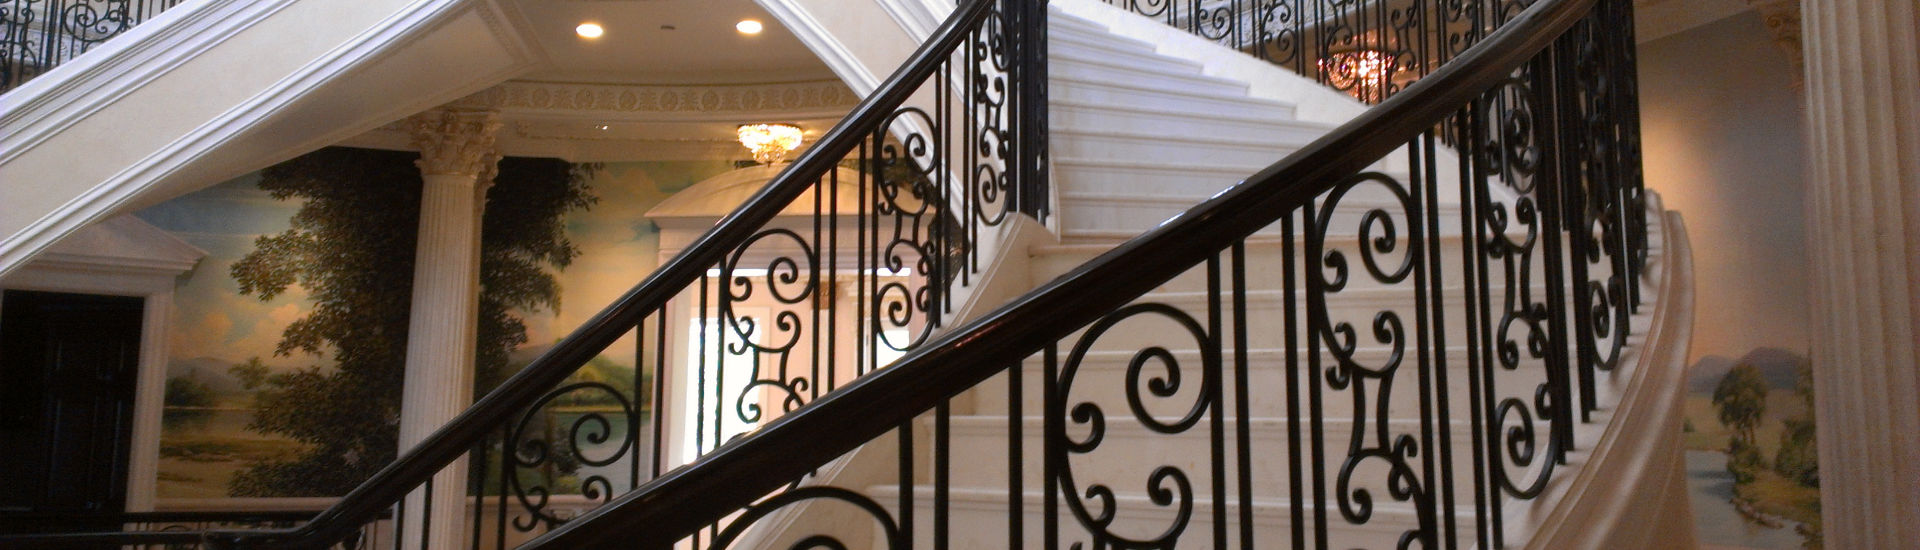 Wrought Iron Railing on Stairs